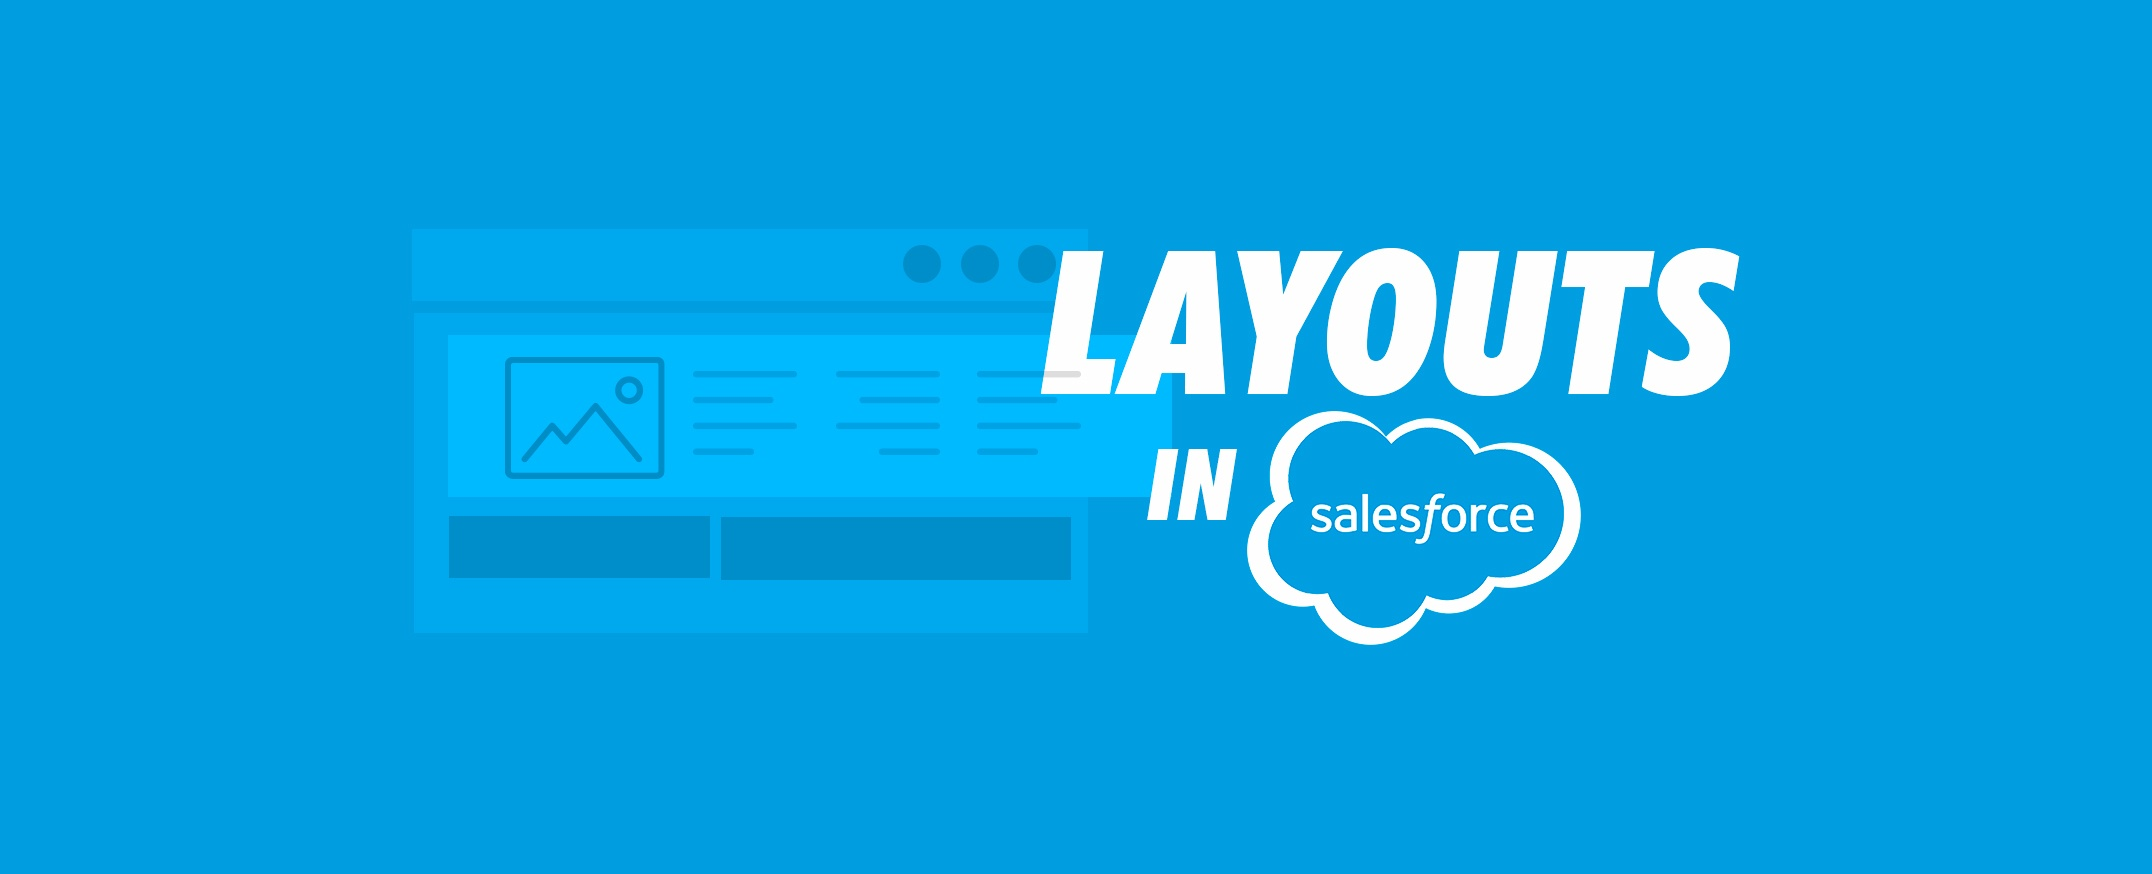 Layouts-in-Salesforce